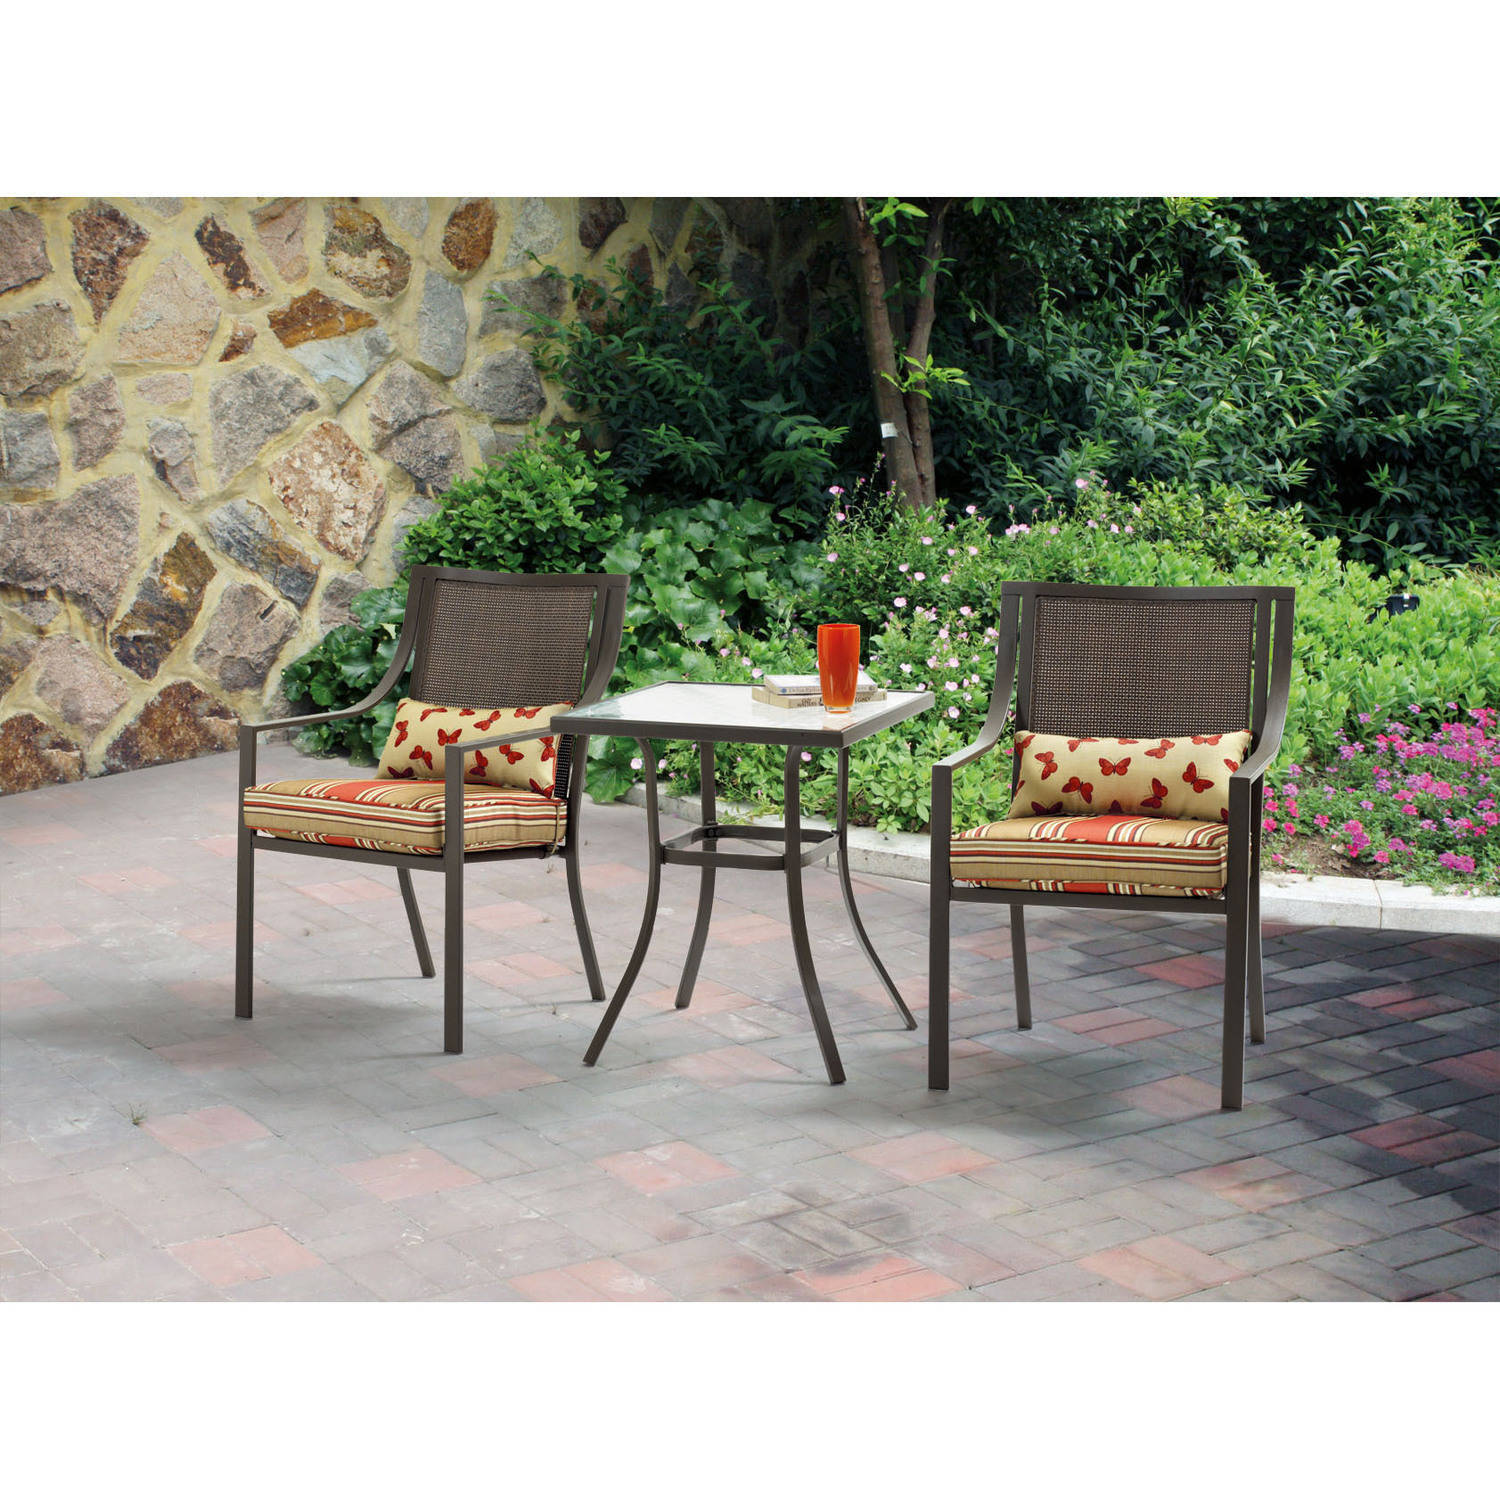 Details about outdoor bistro set 3 piece patio chairs table furniture garden seat tax free